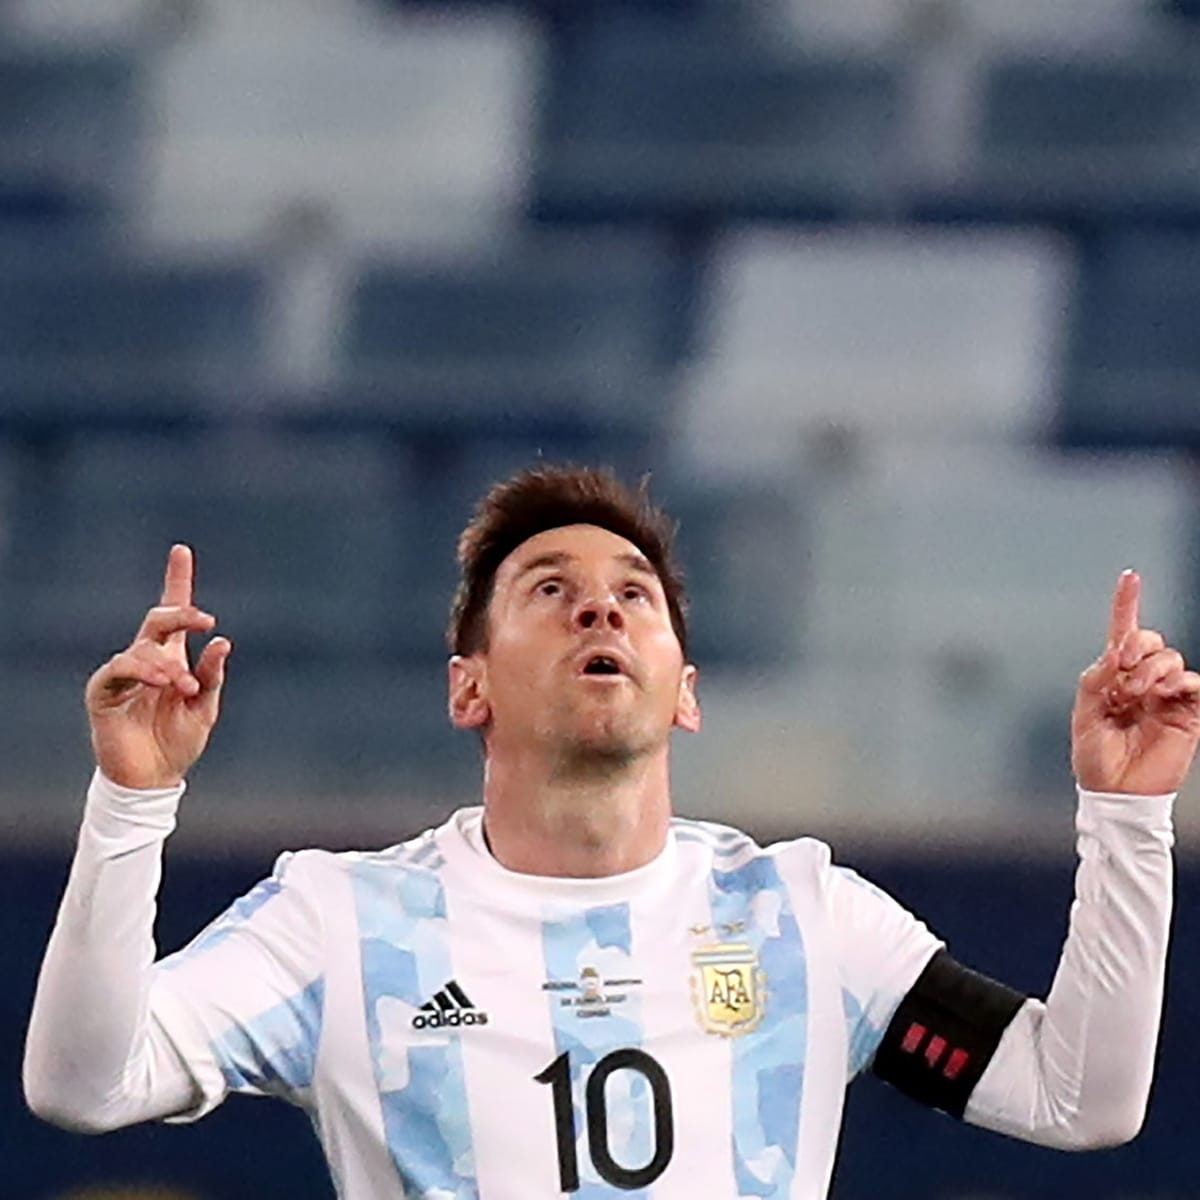 lionel messi points up copa america